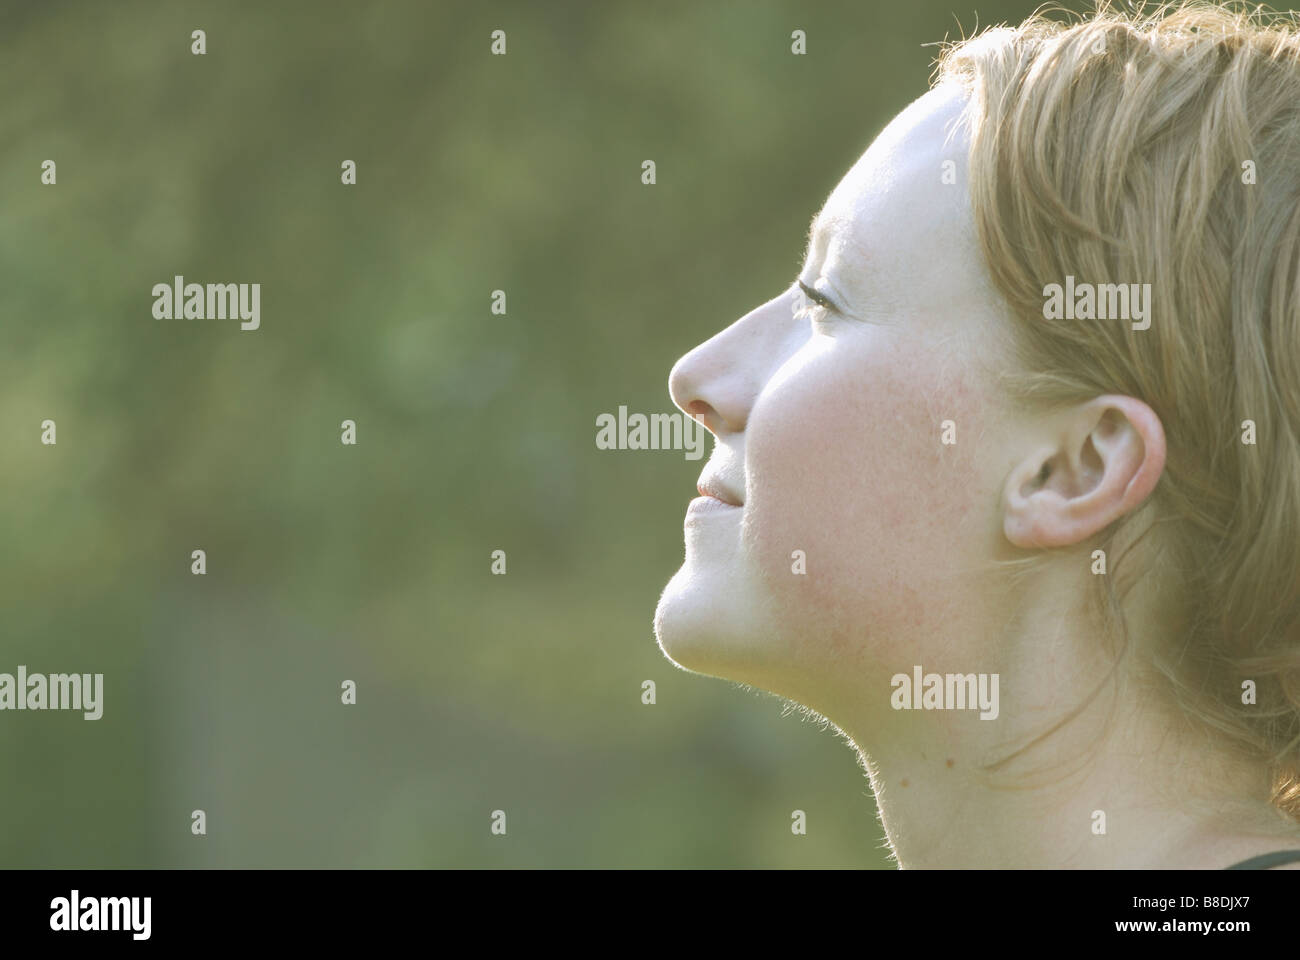 Profile of woman's face tilted upward, Grayling Lake, Riding Mountain National Park, Manitoba, Canada - Stock Image